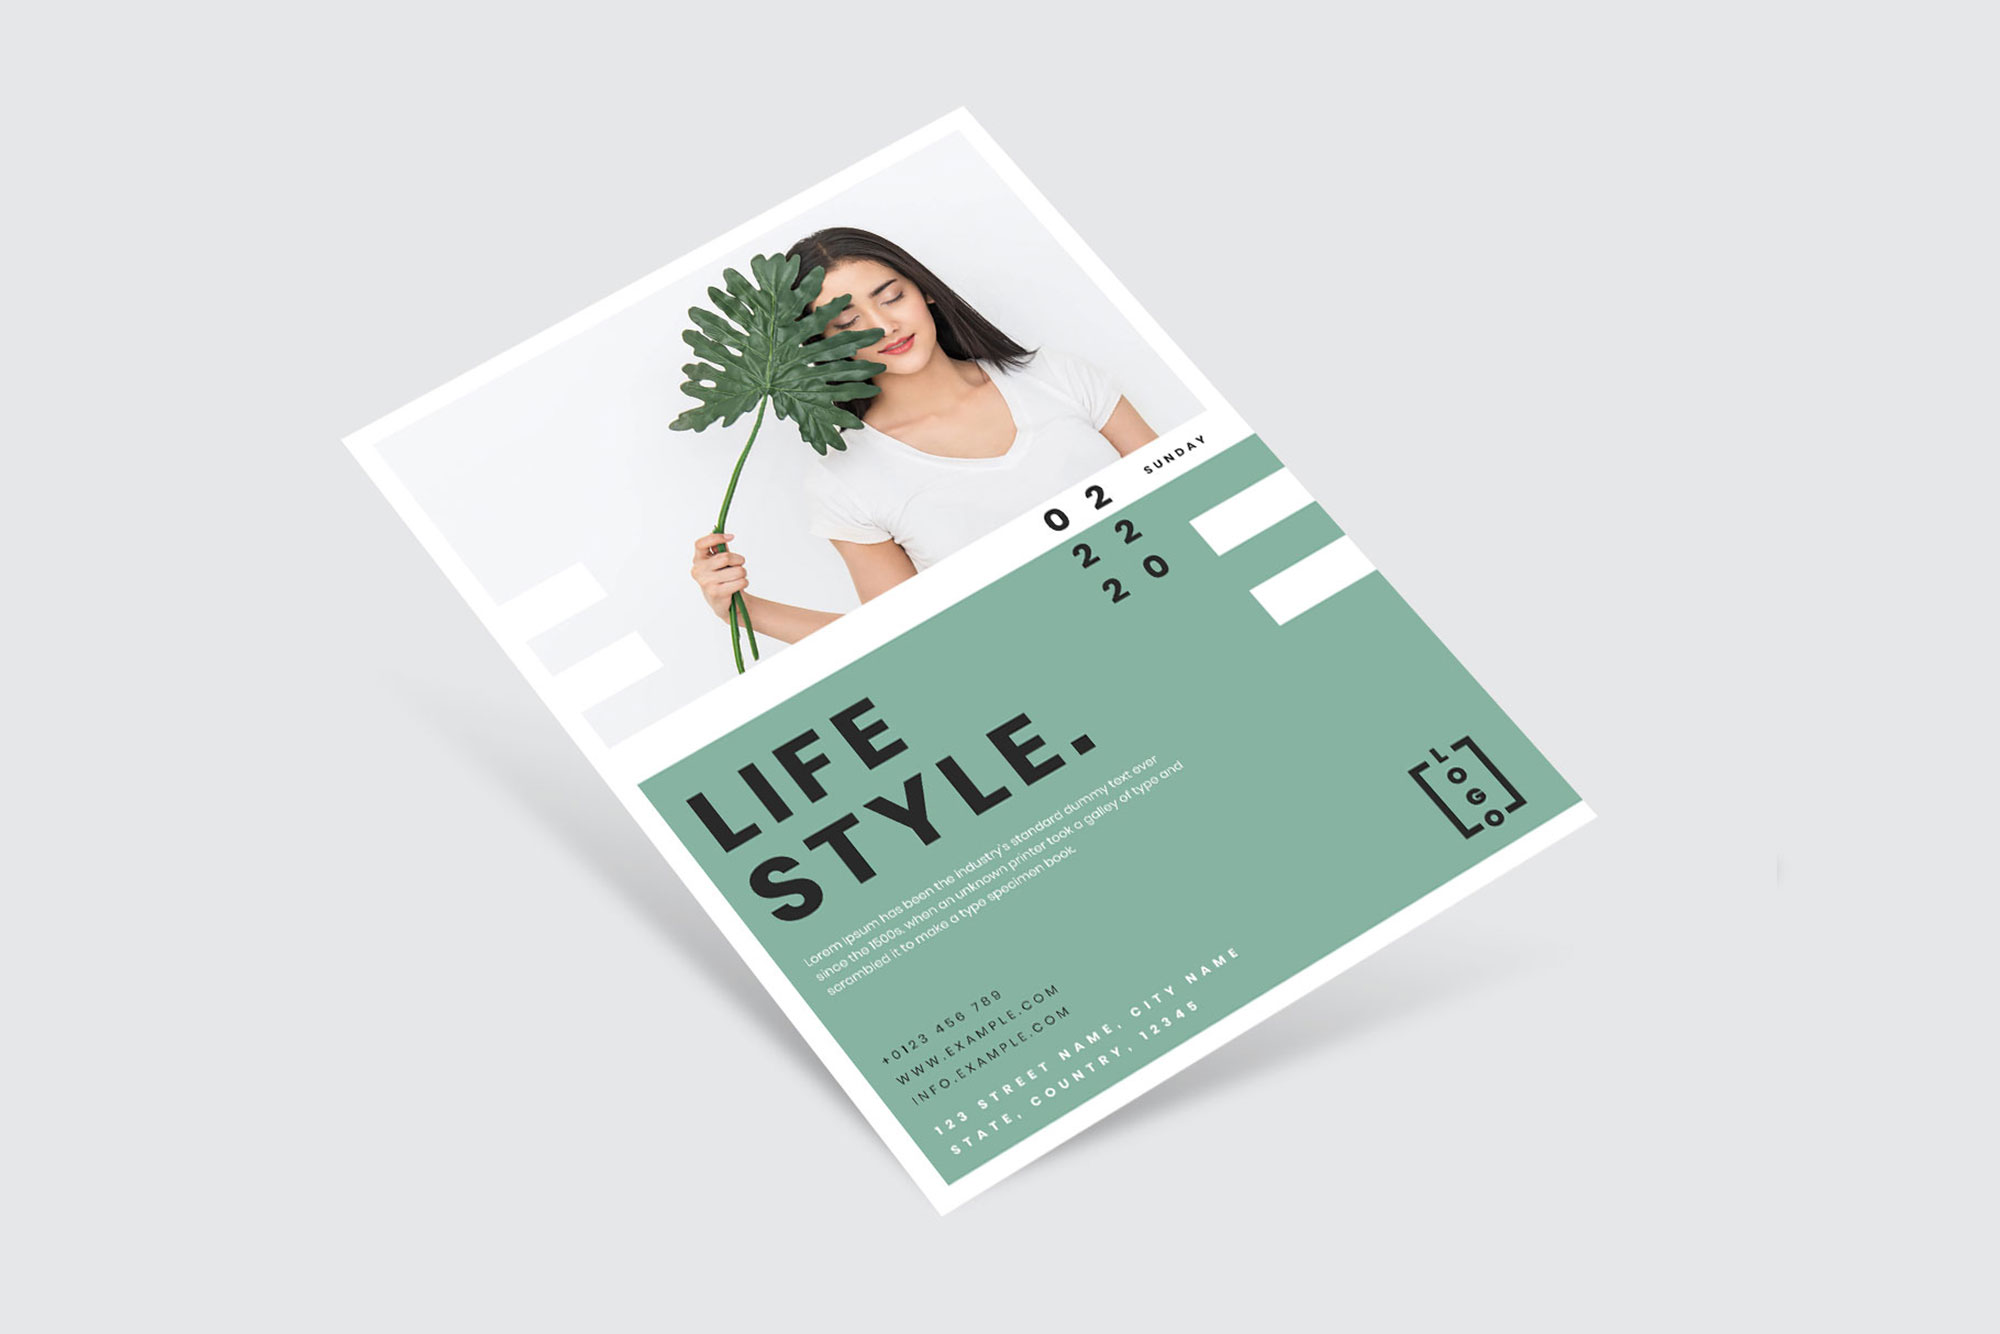 Event Flyer Vol.01 example image 2